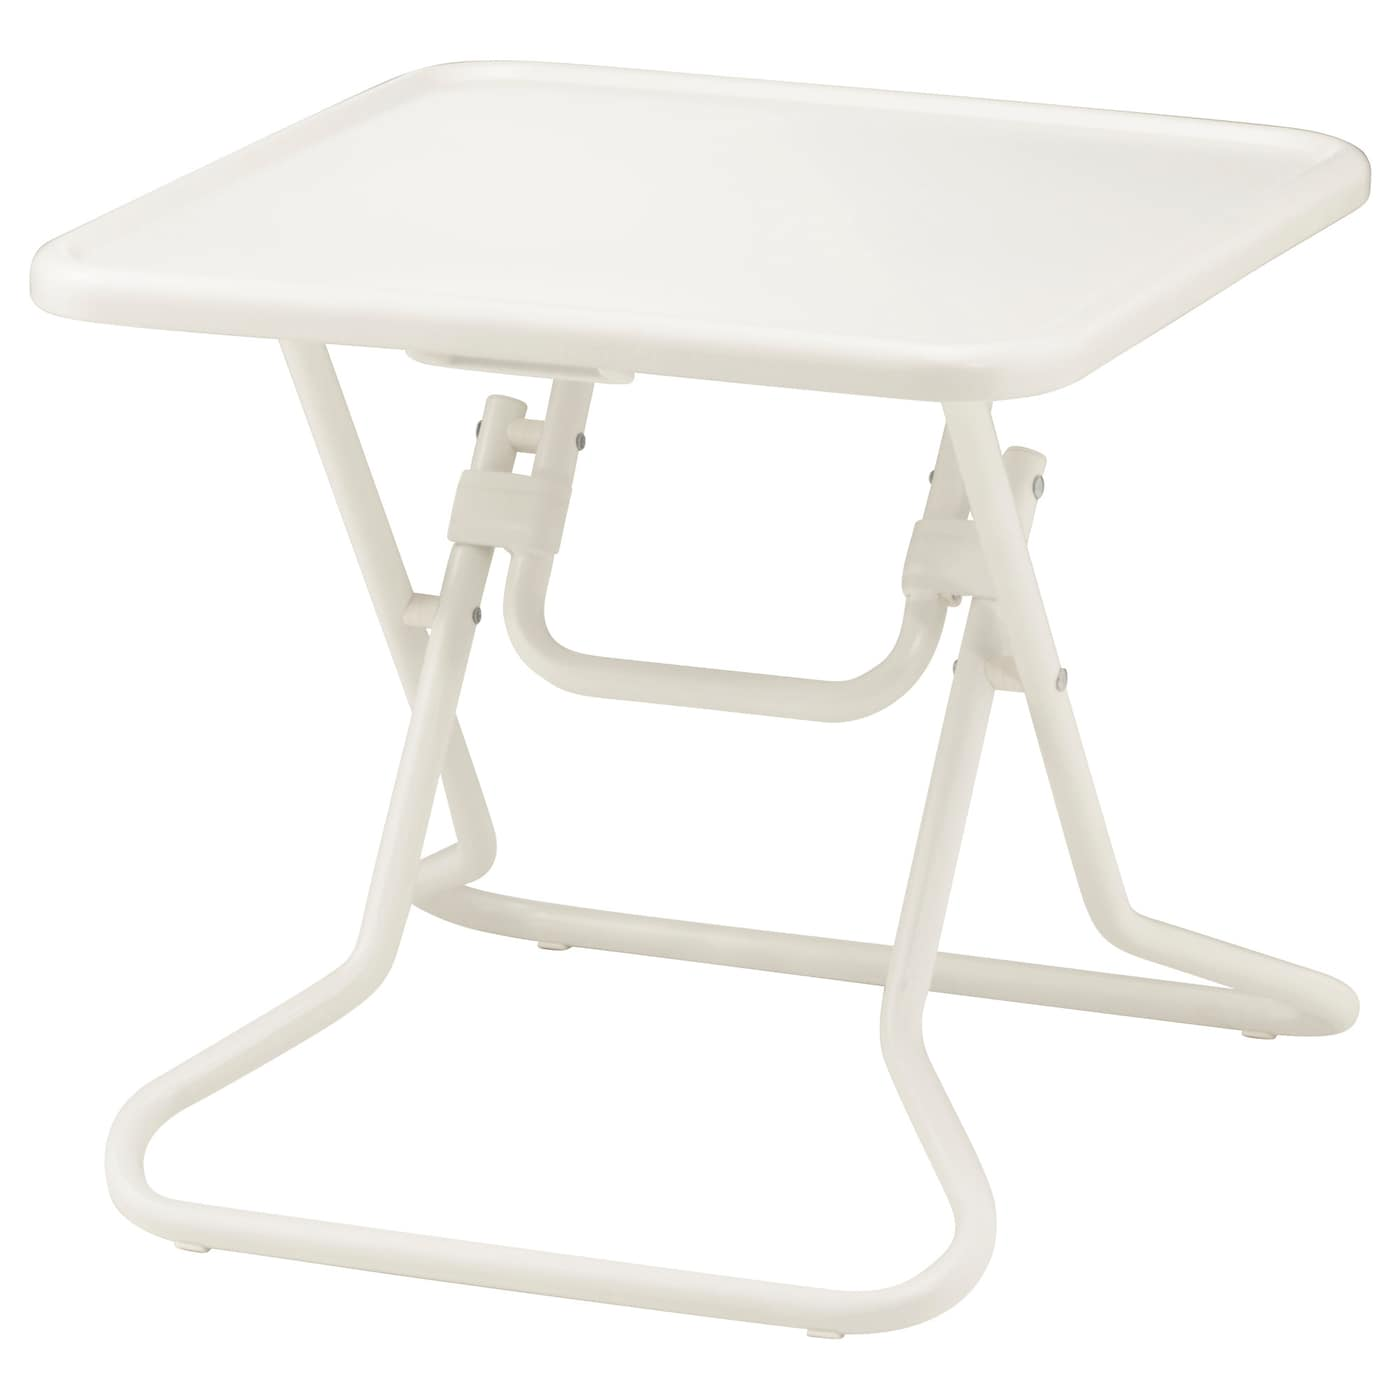 ikea ps 2017 coffee table folding/white - ikea